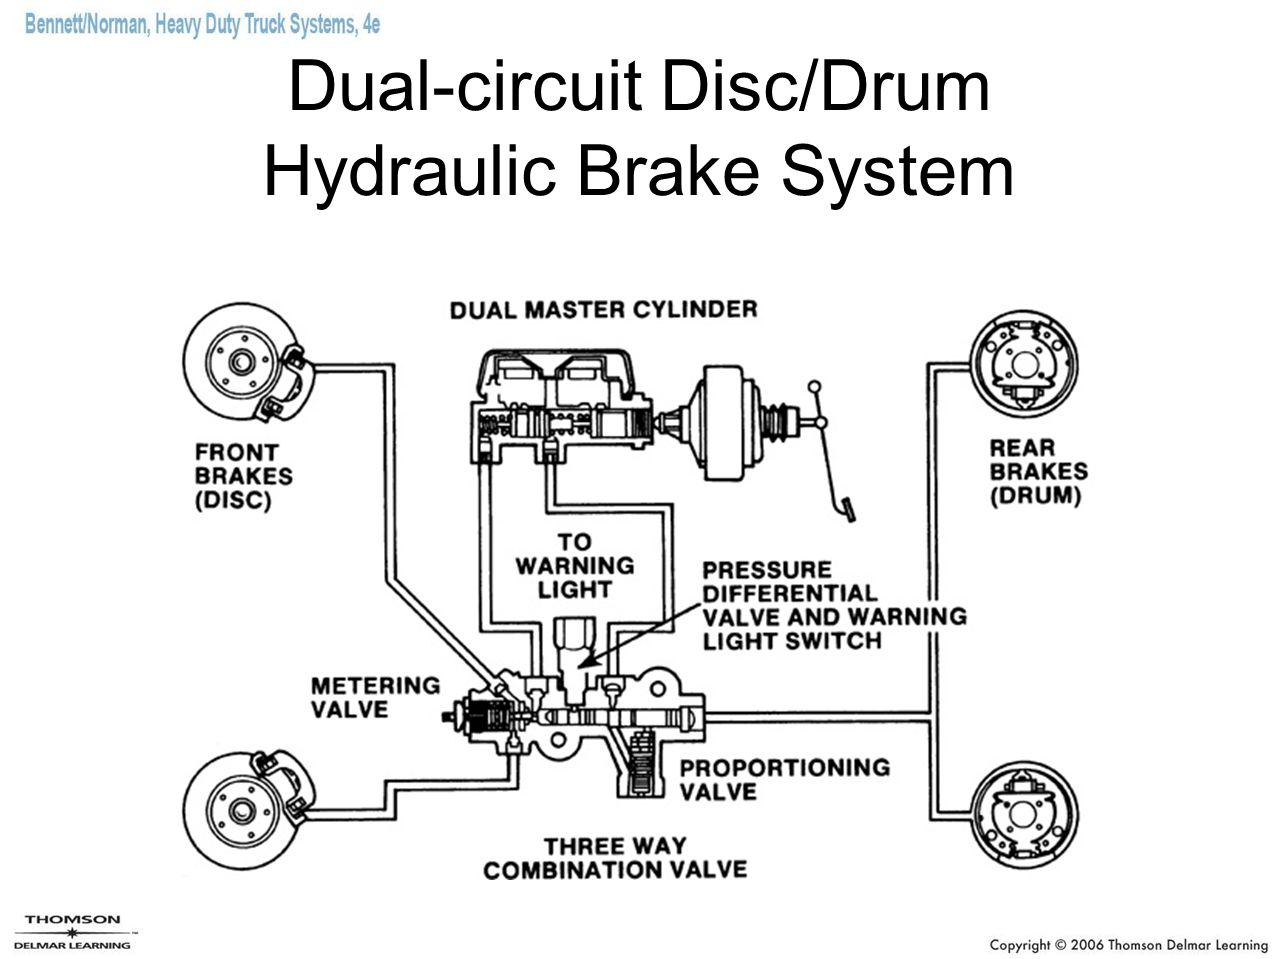 hydraulic brakes and air